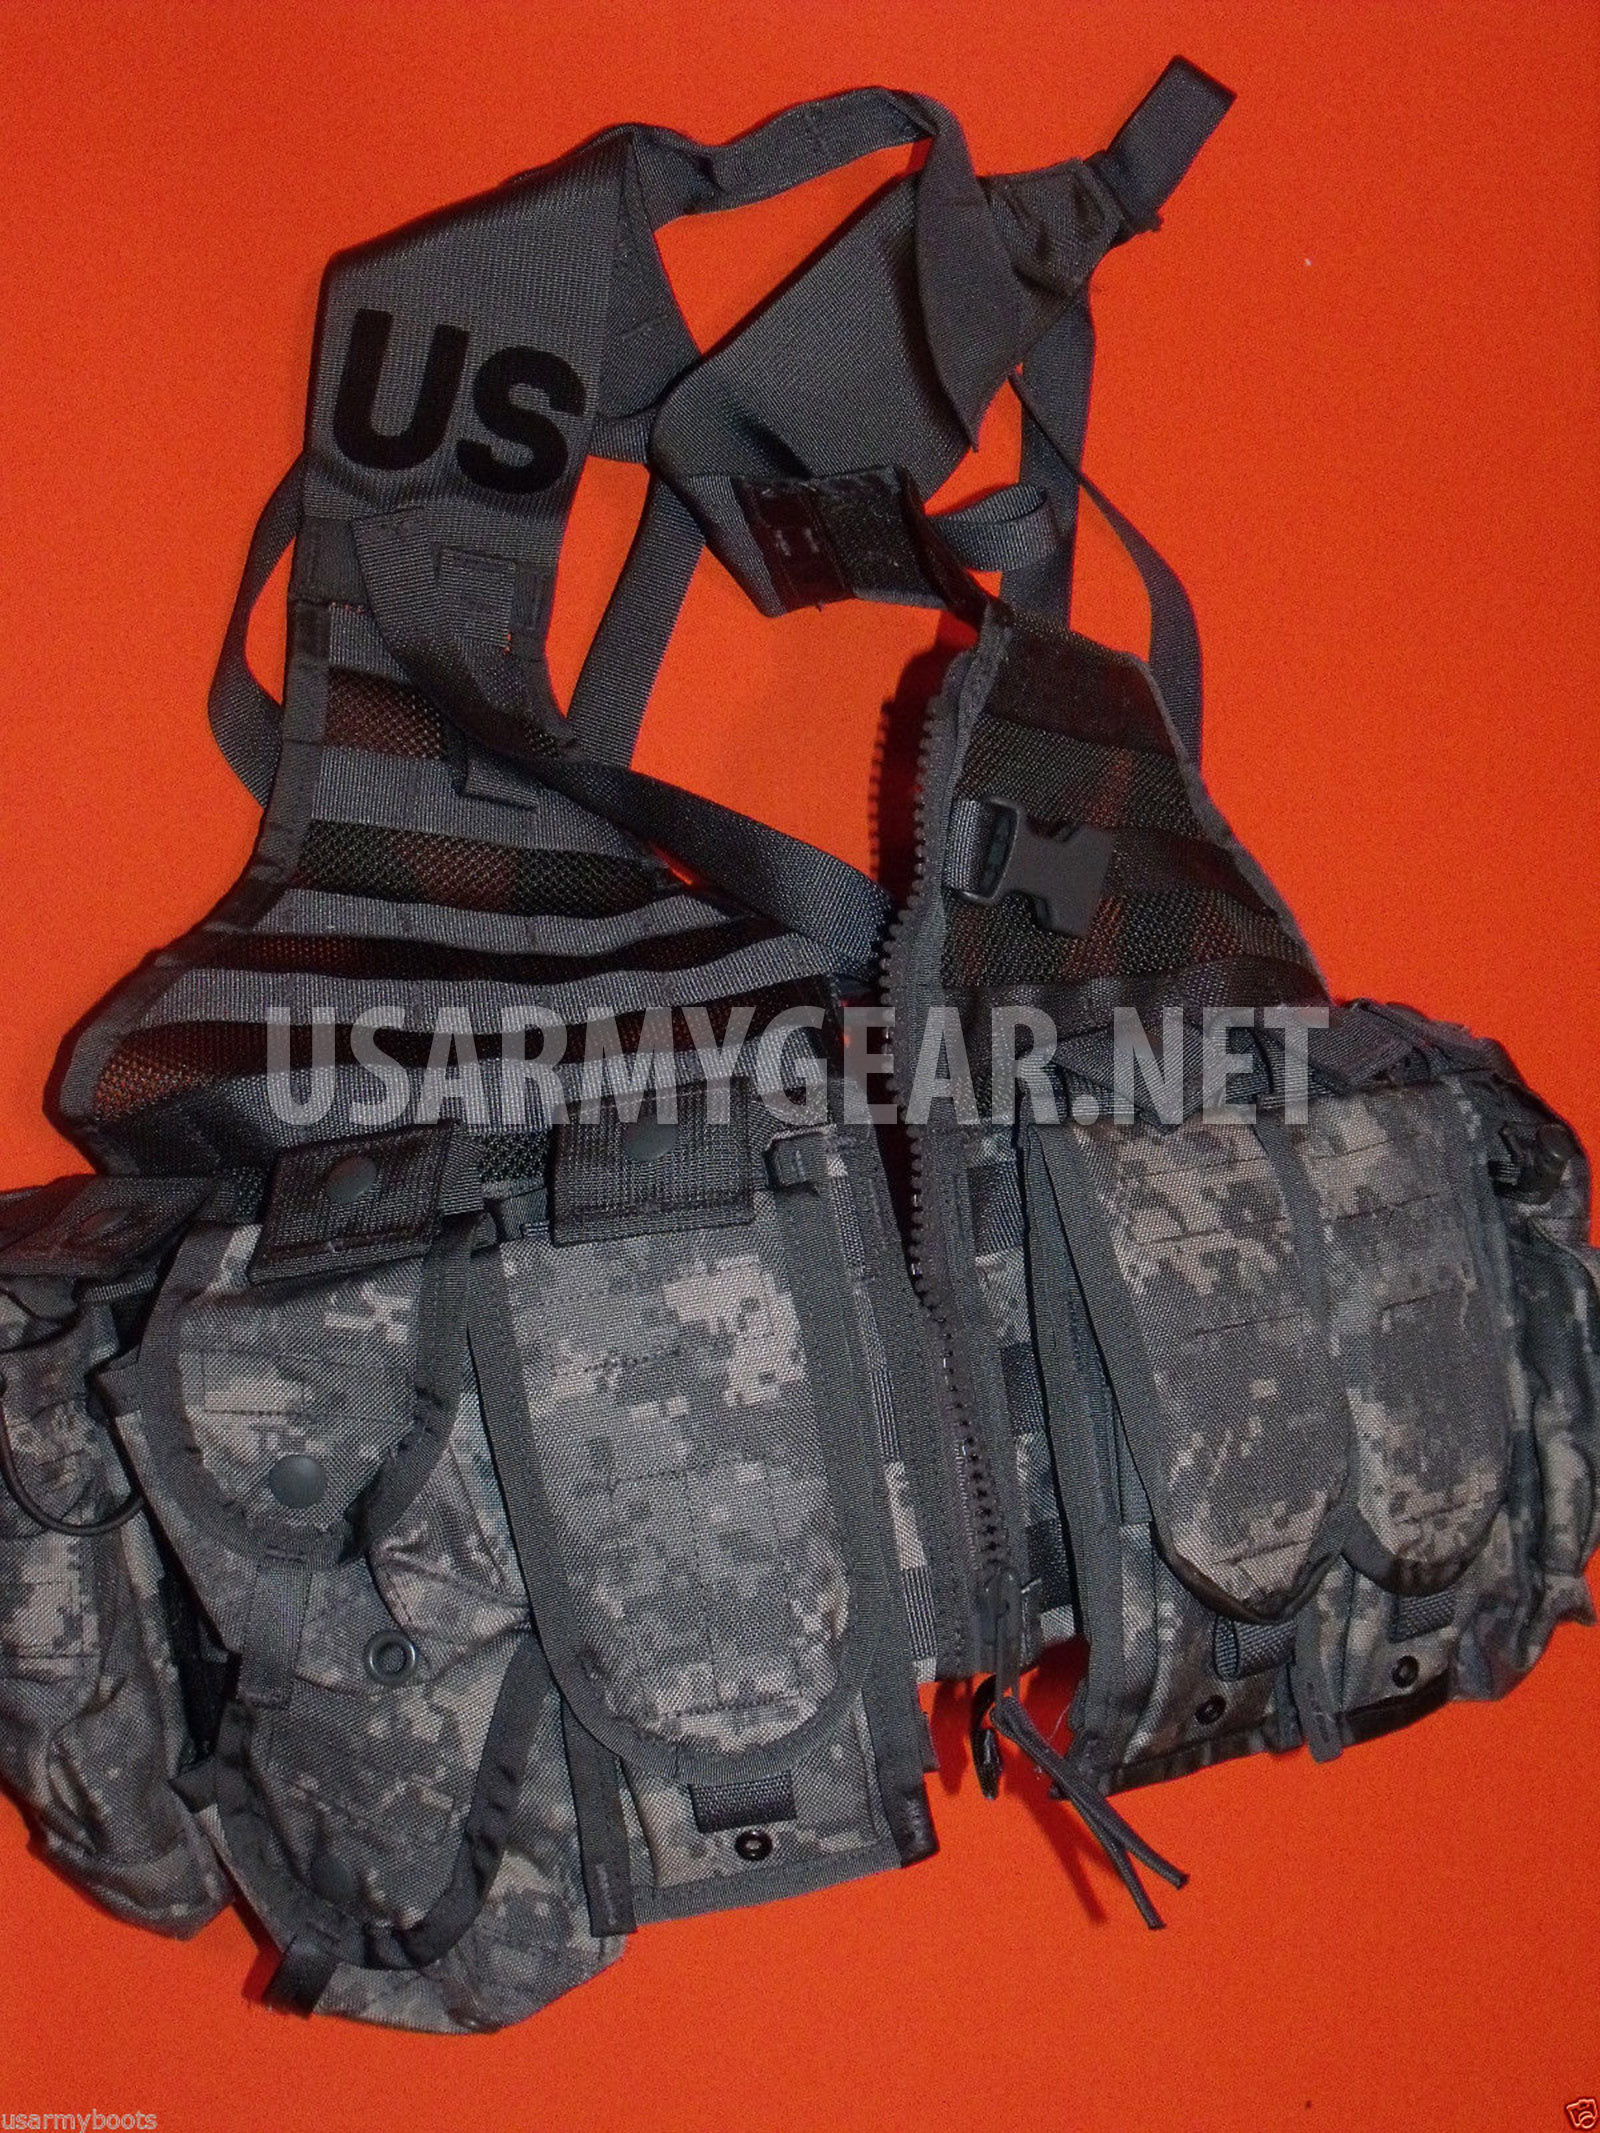 US Military MOLLE ACU Fighting Load Carrier FLC Tactical Vest New in Bag